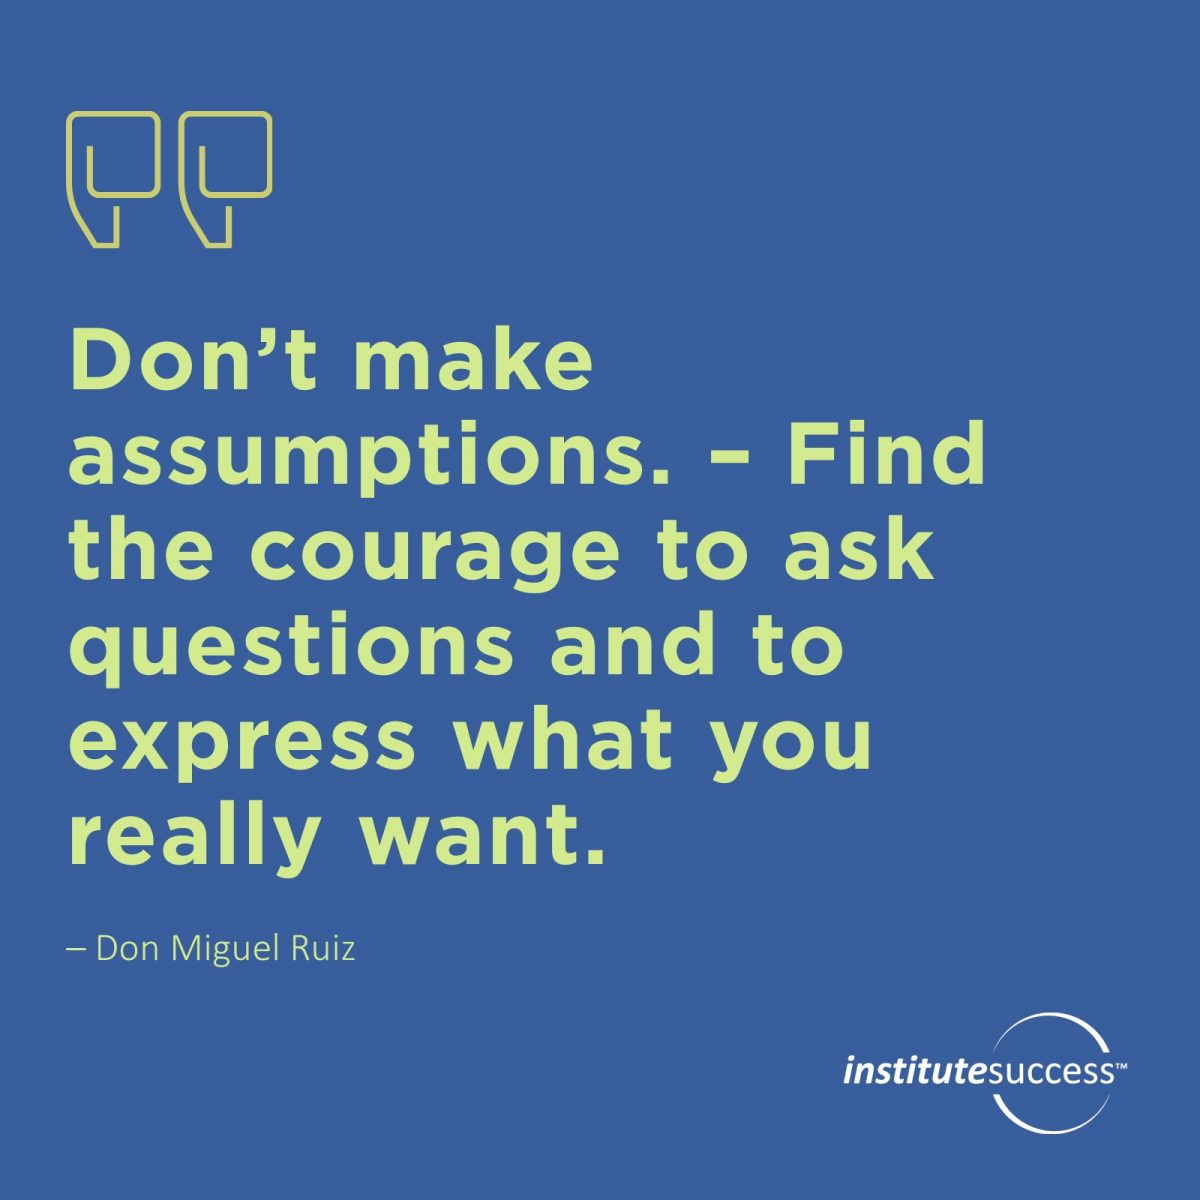 Don't make assumptions. – Find the courage to ask questions and to express what you really want. 	Don Miguel Ruiz